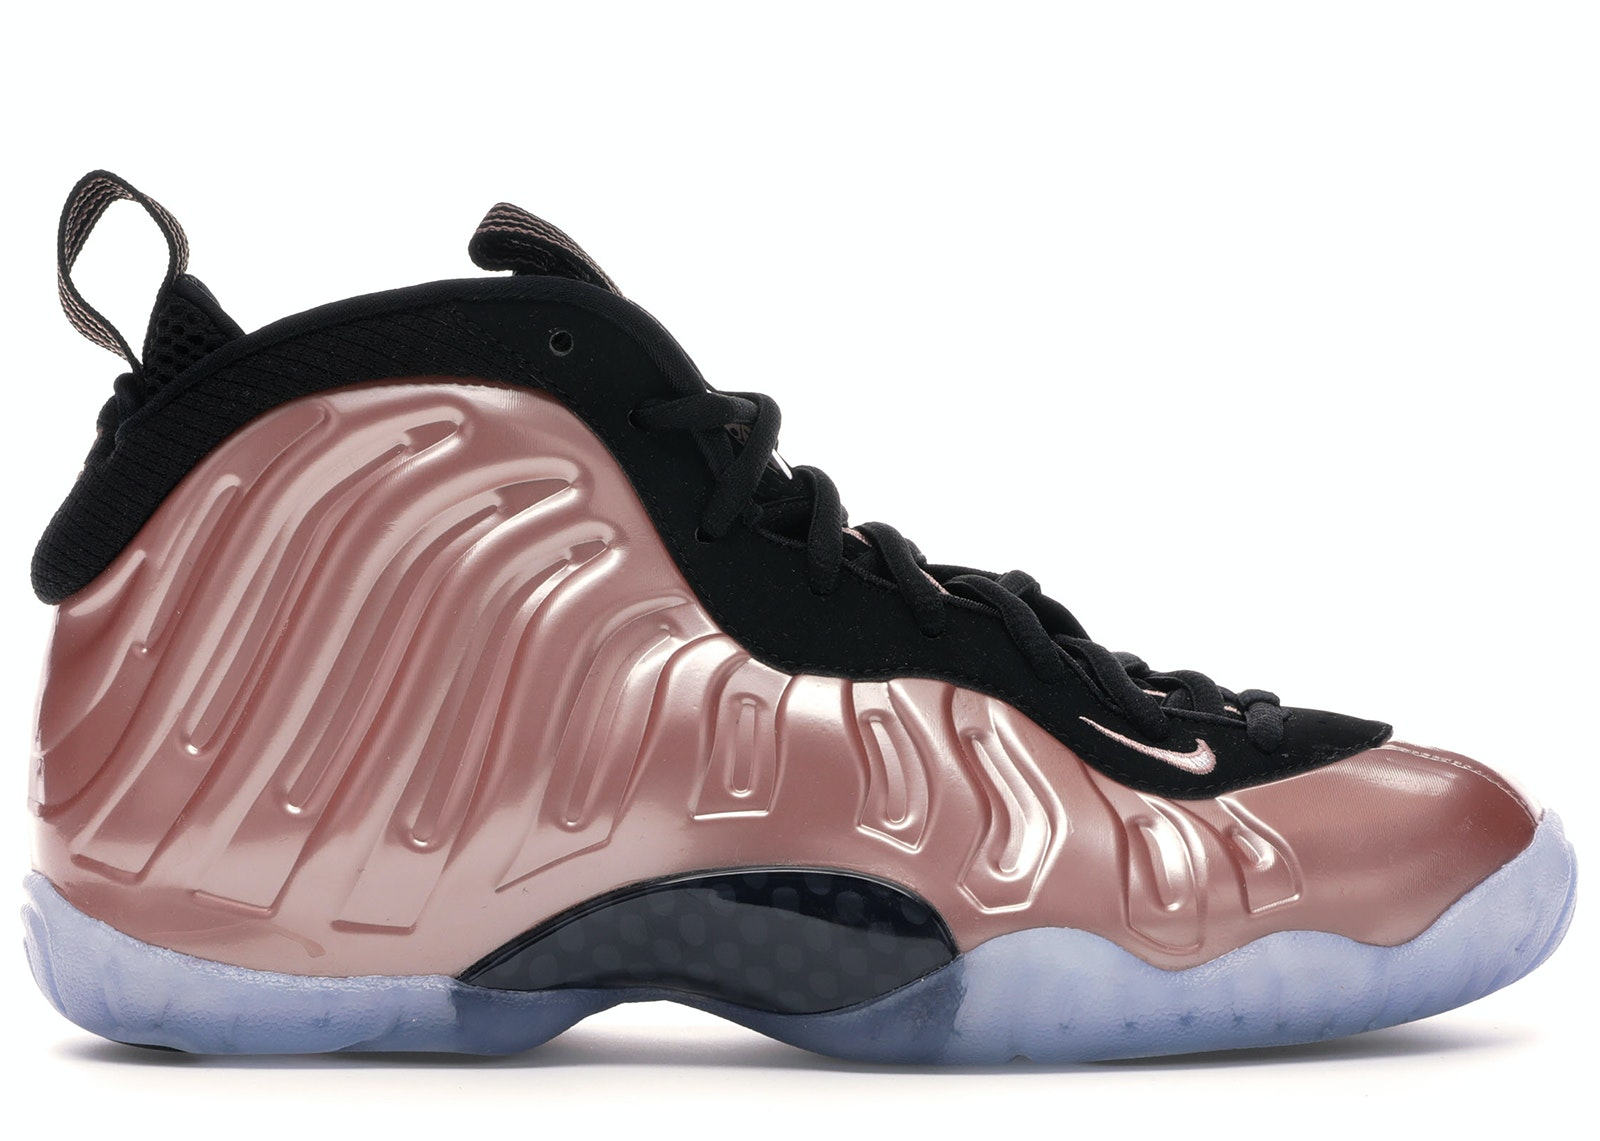 Nike Air Foamposite One Mini SwooshJordan Depot